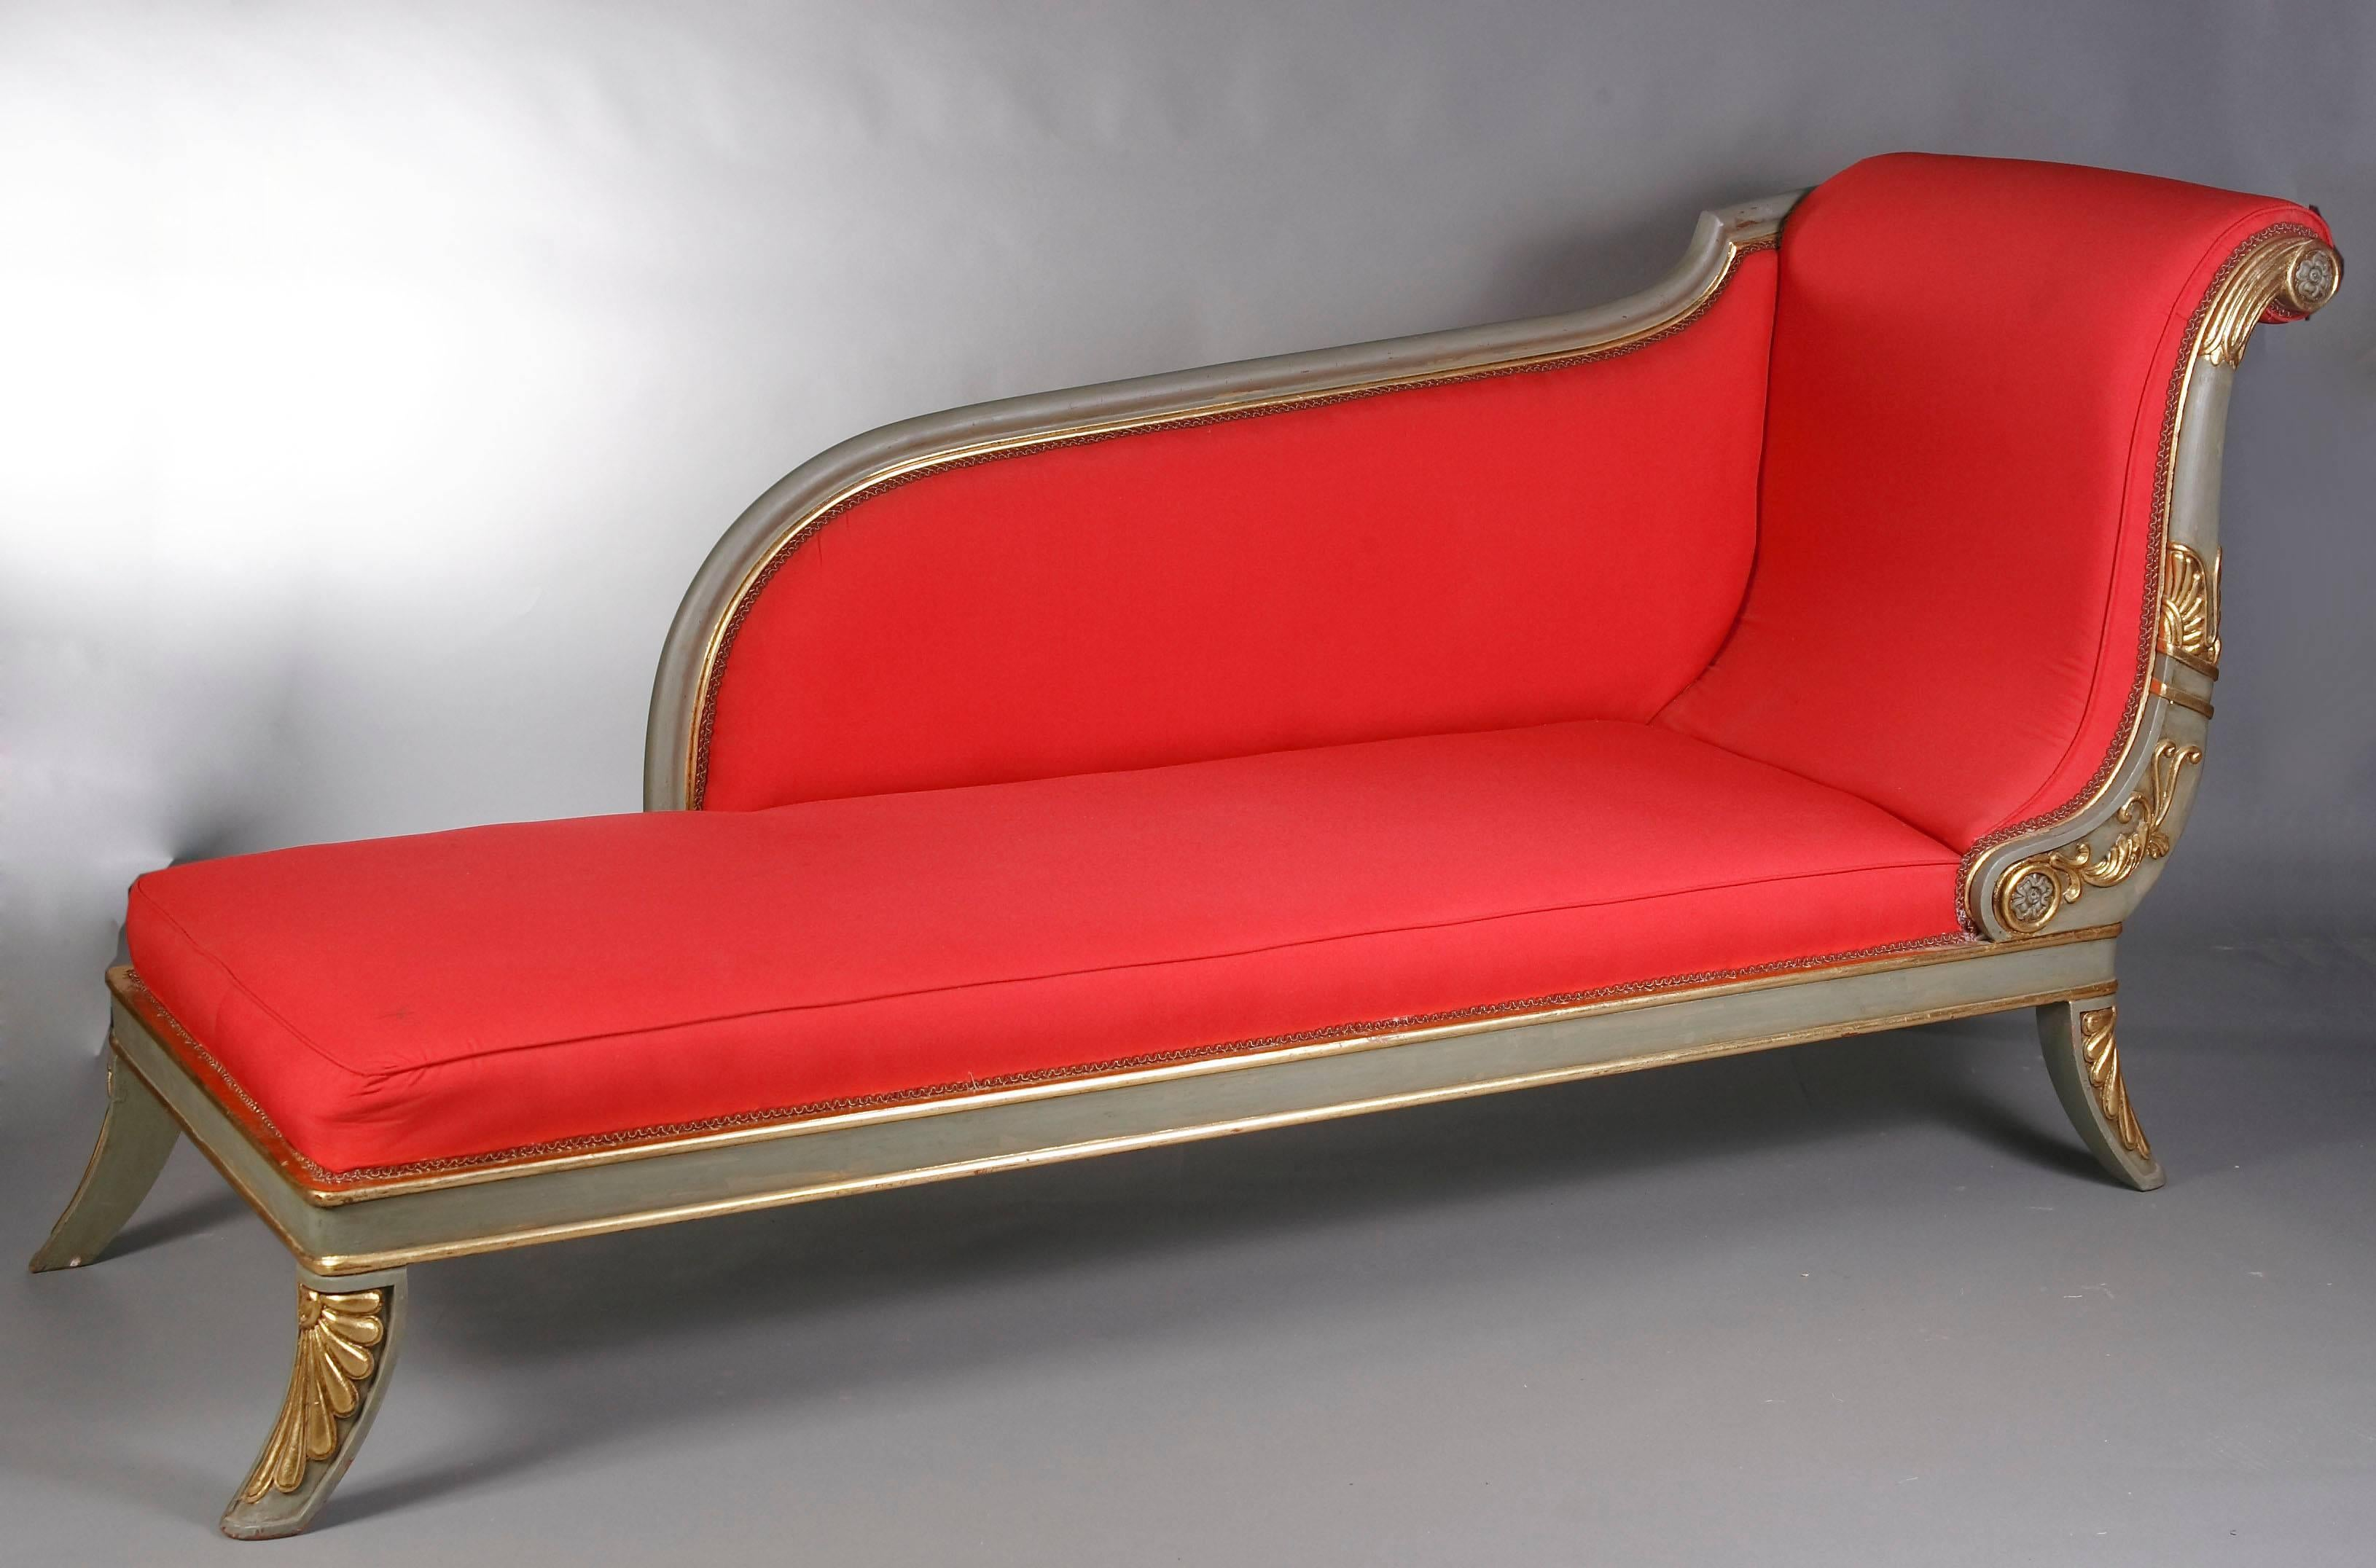 size chaise x leather chairs lounge theamphletts chair ideas in red